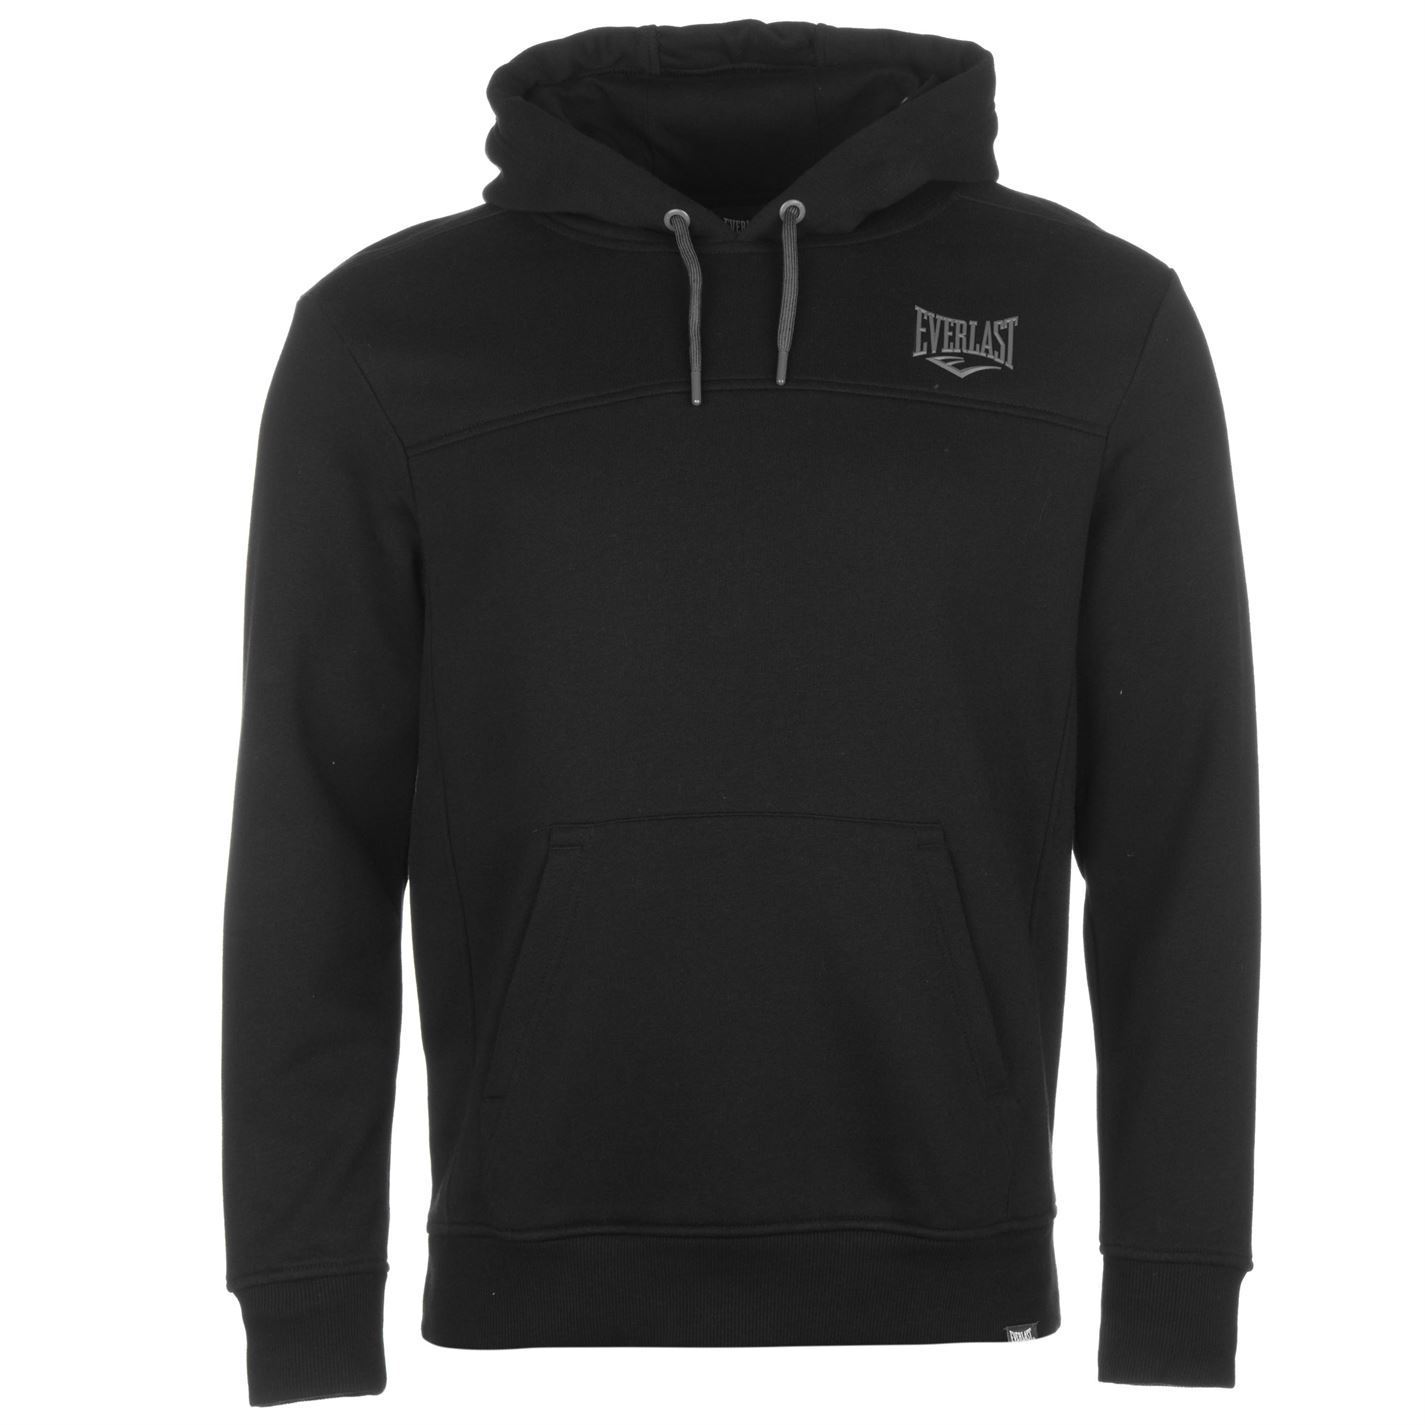 Everlast-Logo-Pullover-Hoody-Mens-OTH-Hoodie-Hooded-Top-Sweatshirt-Sweater thumbnail 4